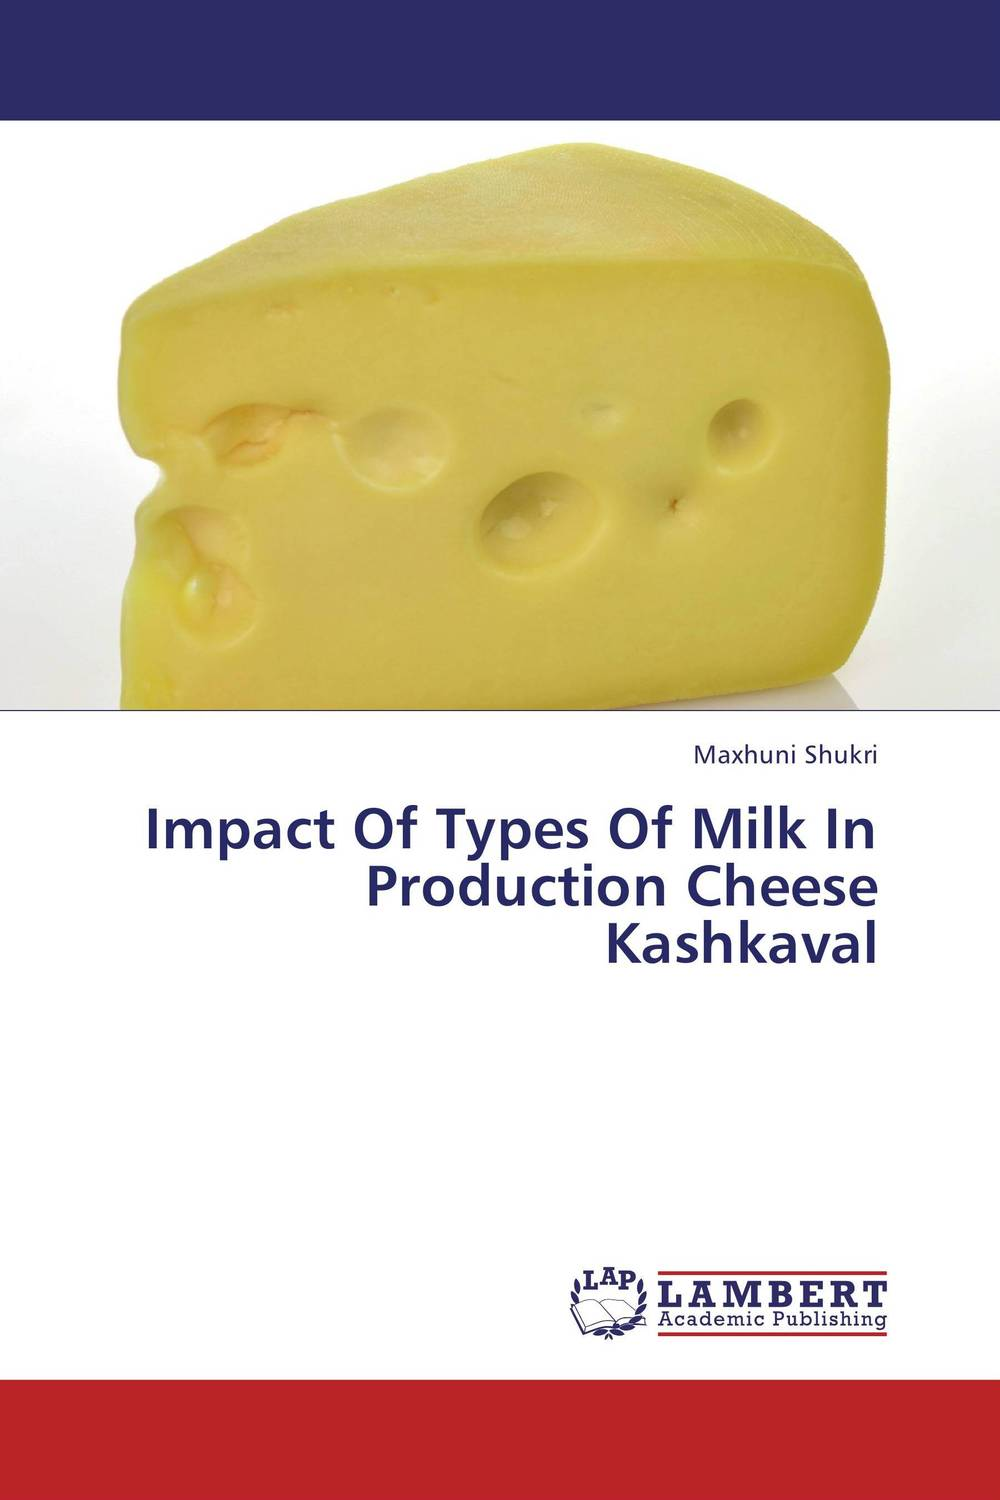 Impact Of Types Of Milk In Production Cheese Kashkaval